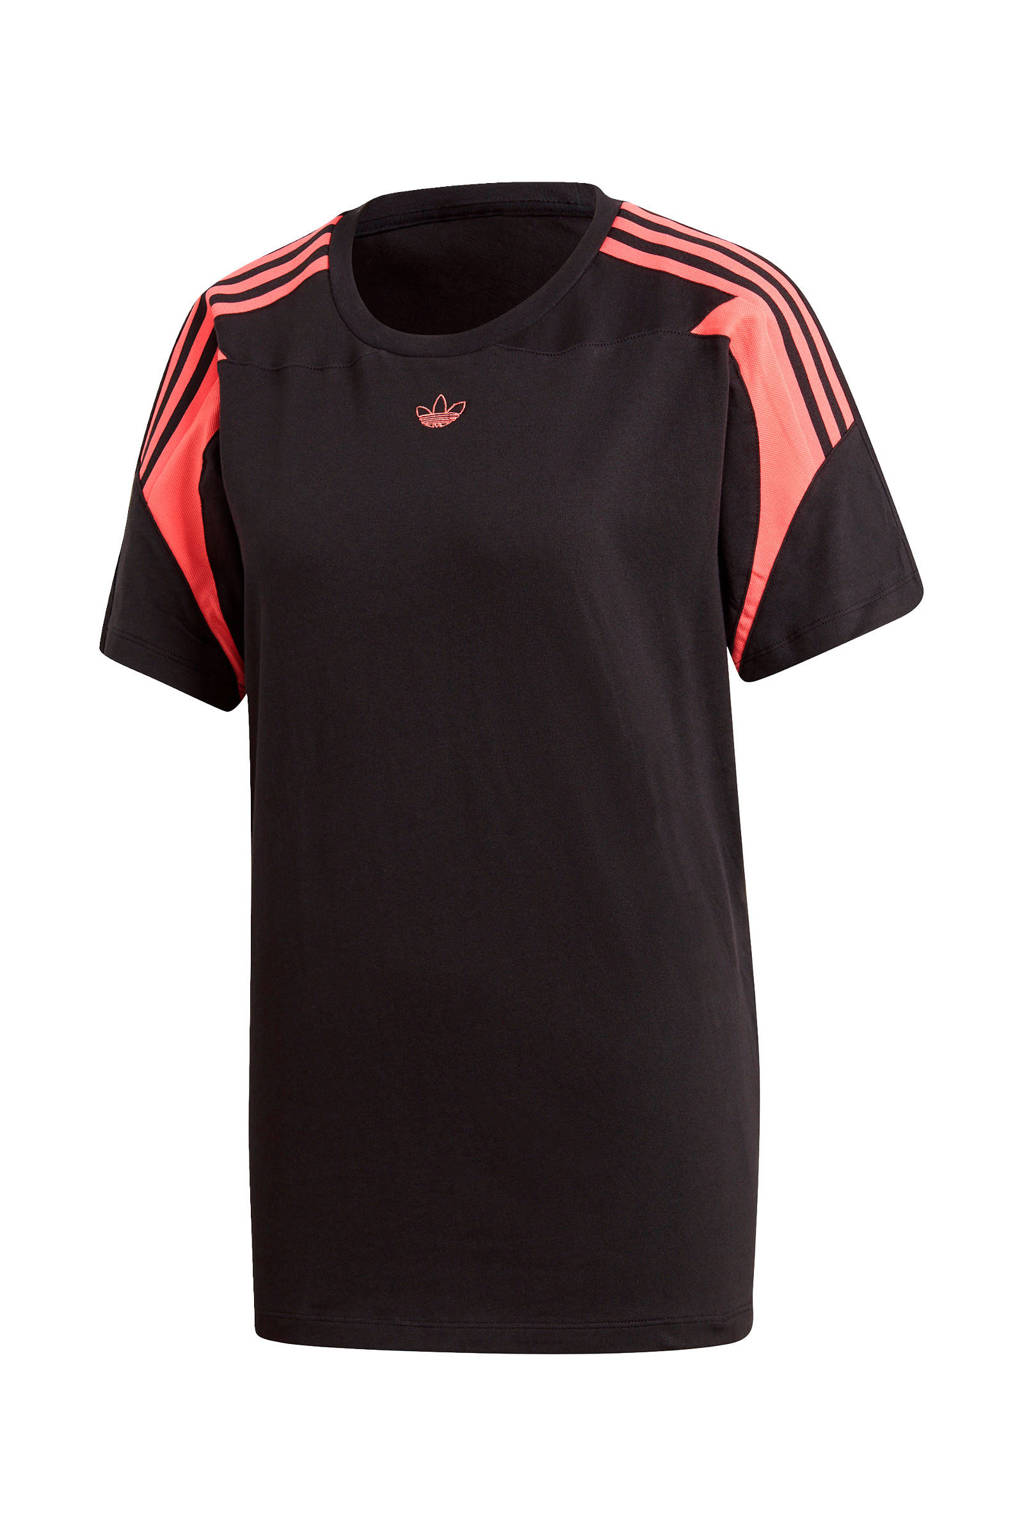 adidas Originals Adicolor T-shirt zwart/wit, Zwart/wit